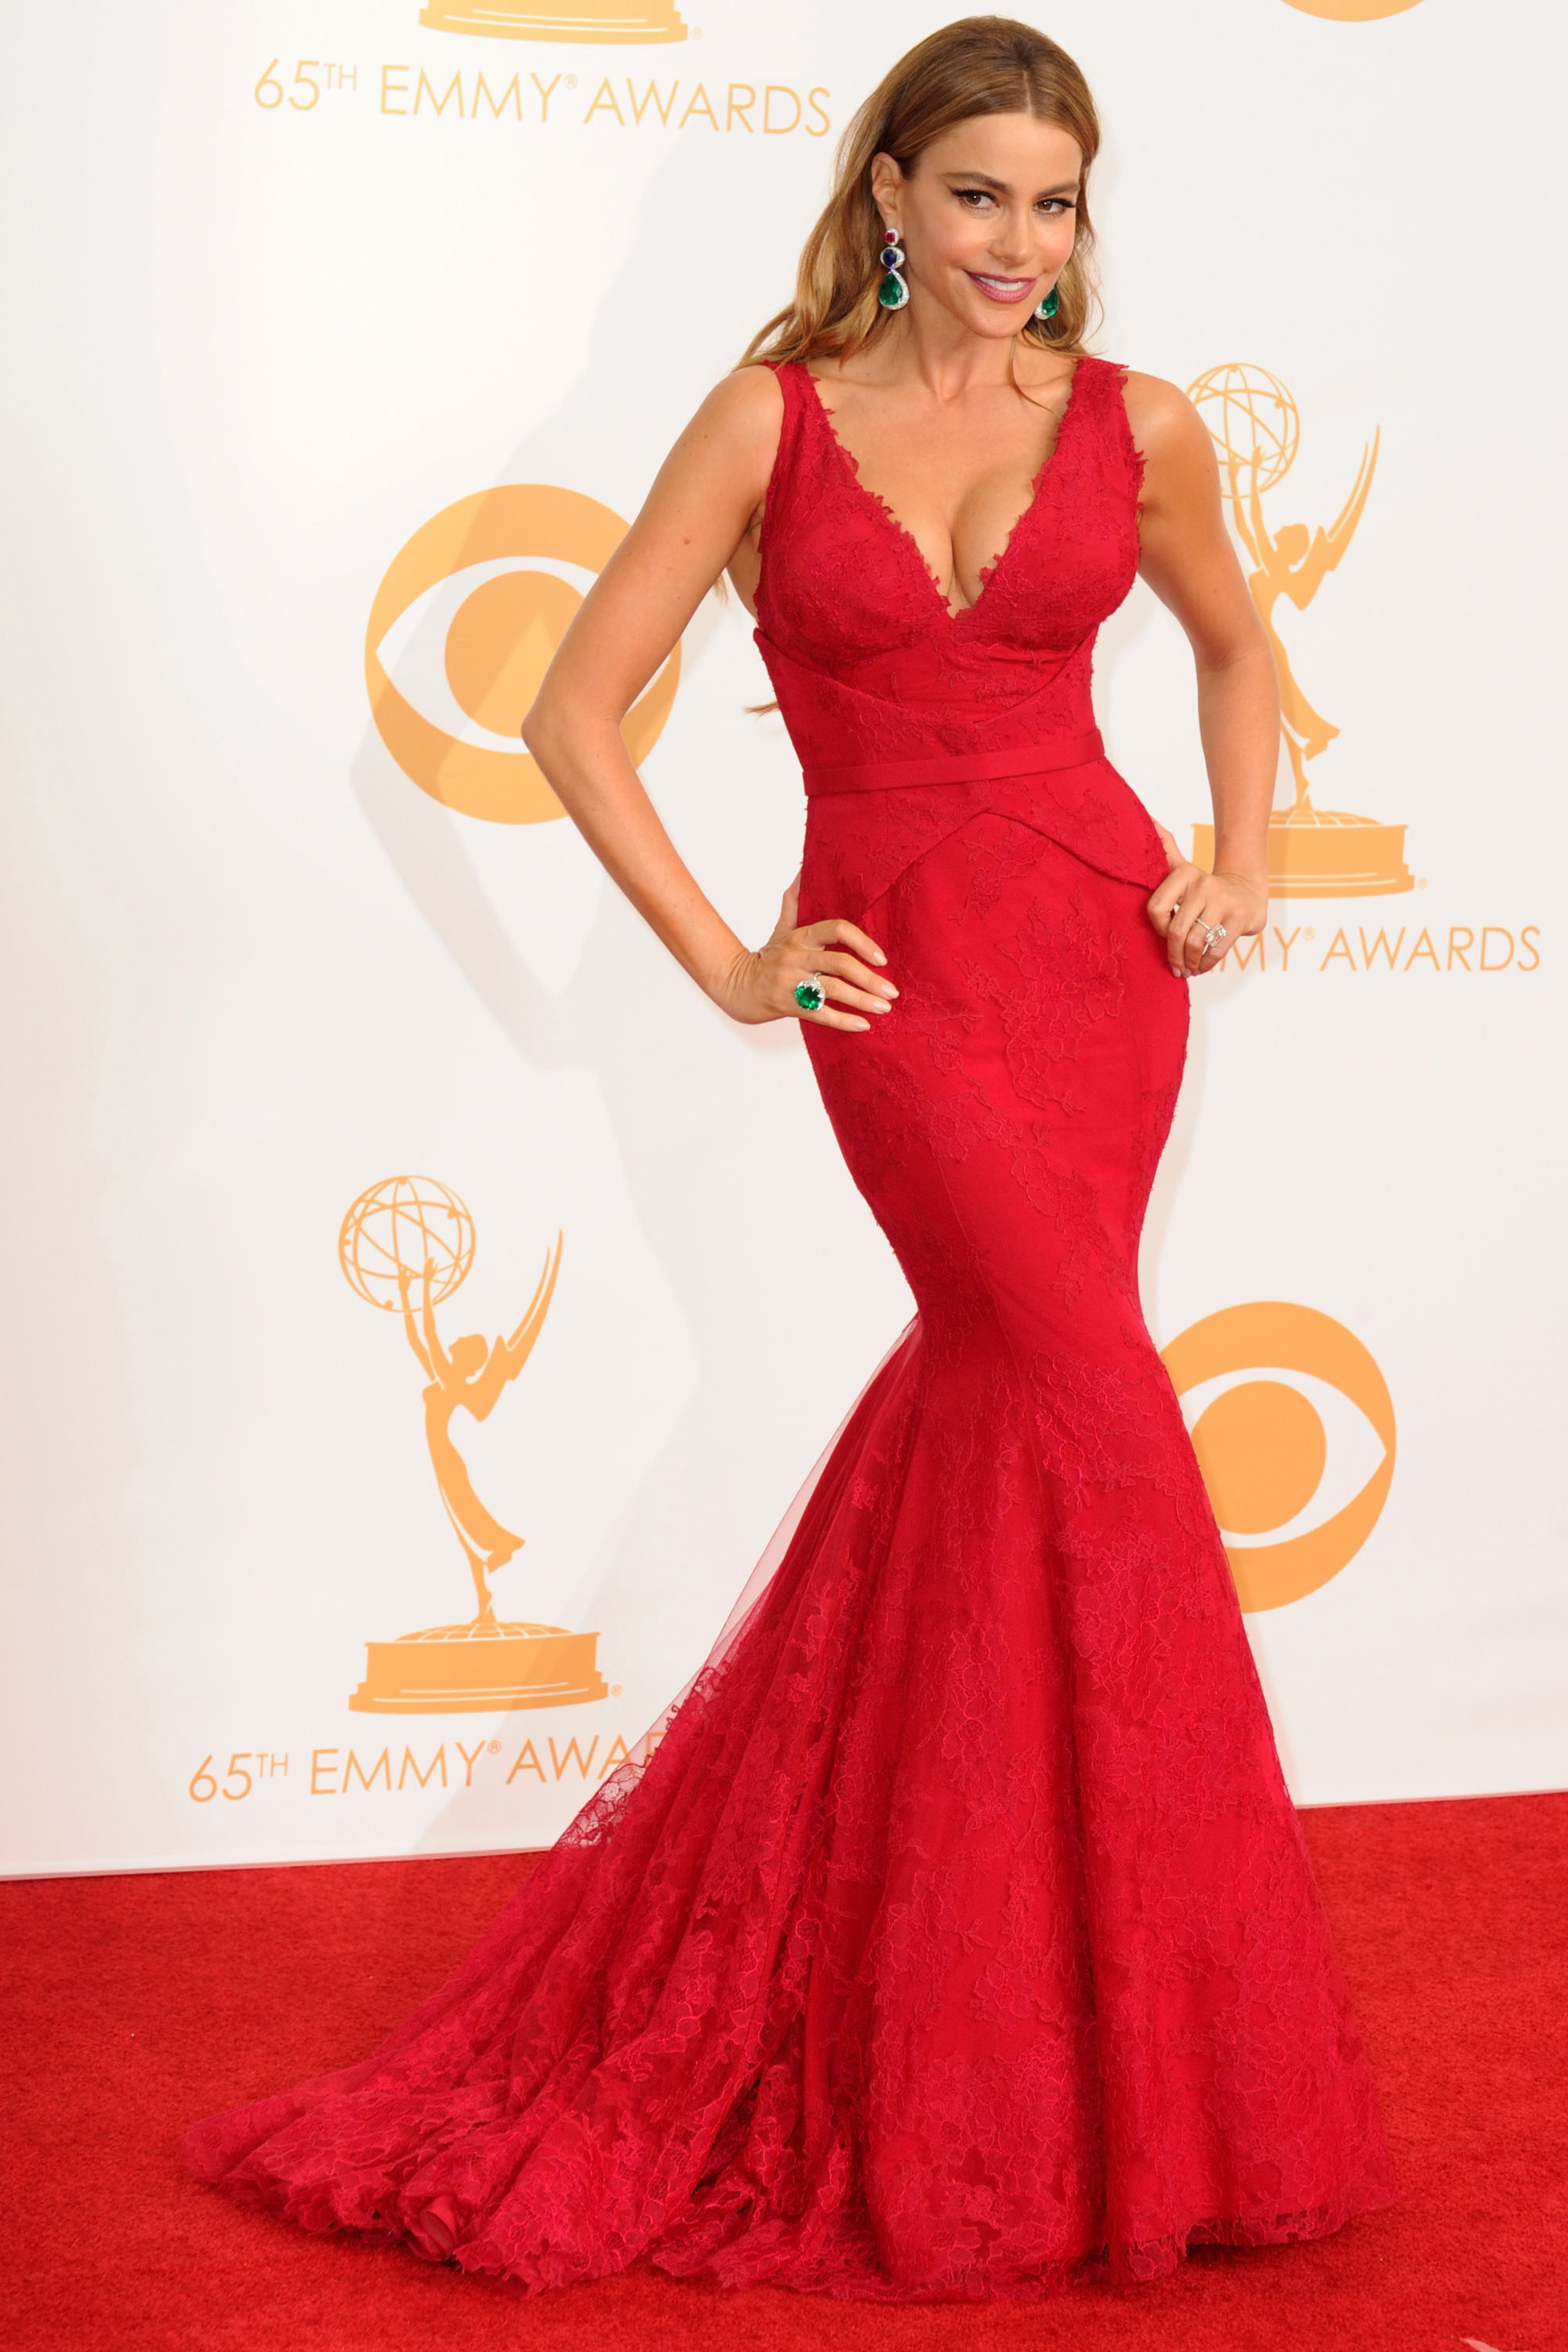 LOS ANGELES, CA - SEPTEMBER 22: Sofia Vergara poses at the 65th Annual Primetime Emmy Awards at Nokia Theatre L.A. Live on September 22, 2013 in Los Angeles, California. (Photo by Steve Granitz/WireImage)